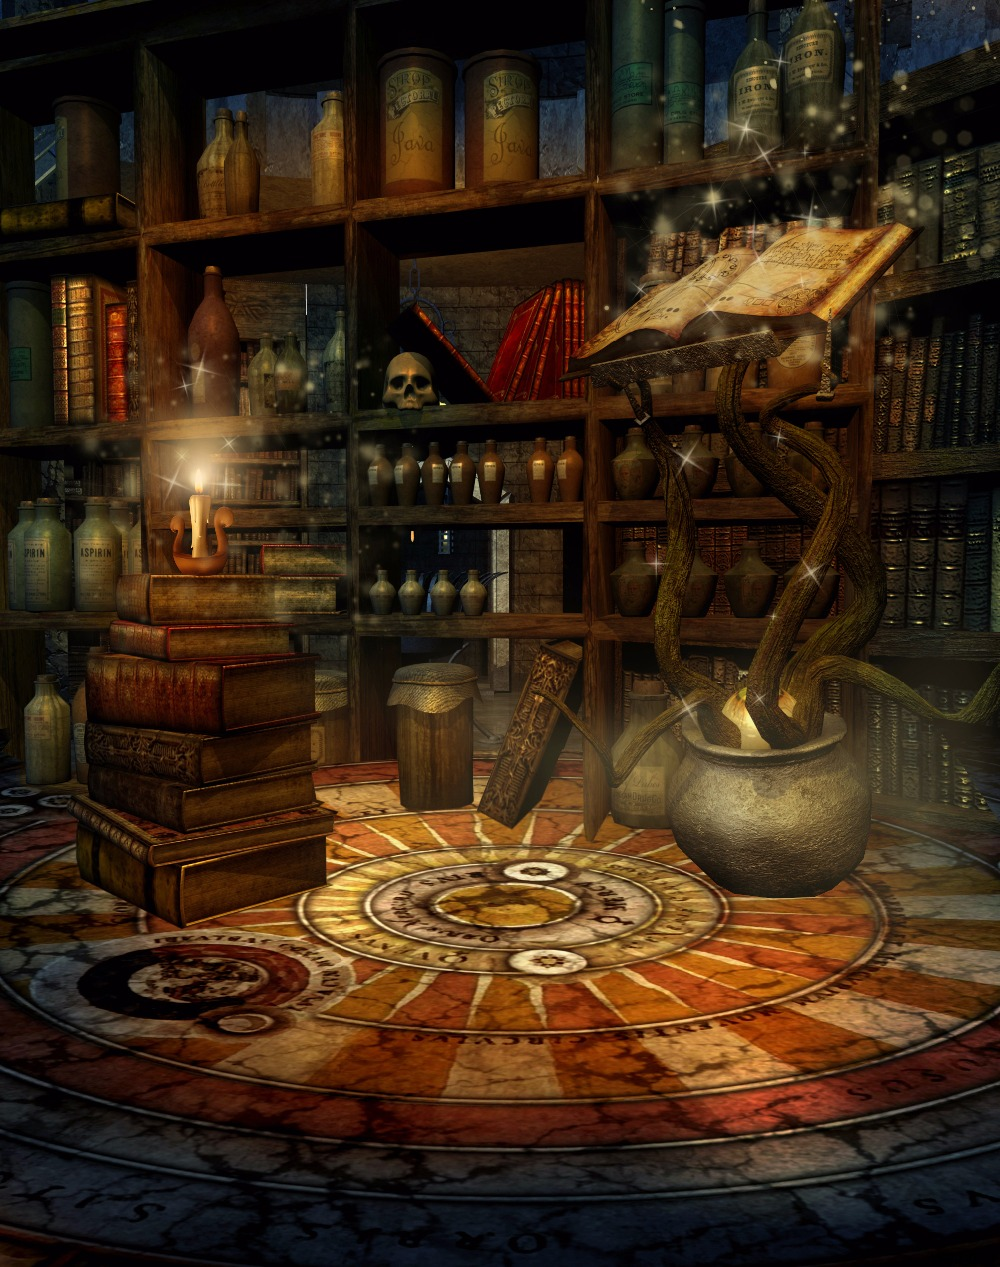 fantasy room magic book potions candles Photo Background Photography Backdrop Quality Vinyl thin vinyl vintage book shelf backdrop book case library book store printed fabric photography background f 2686